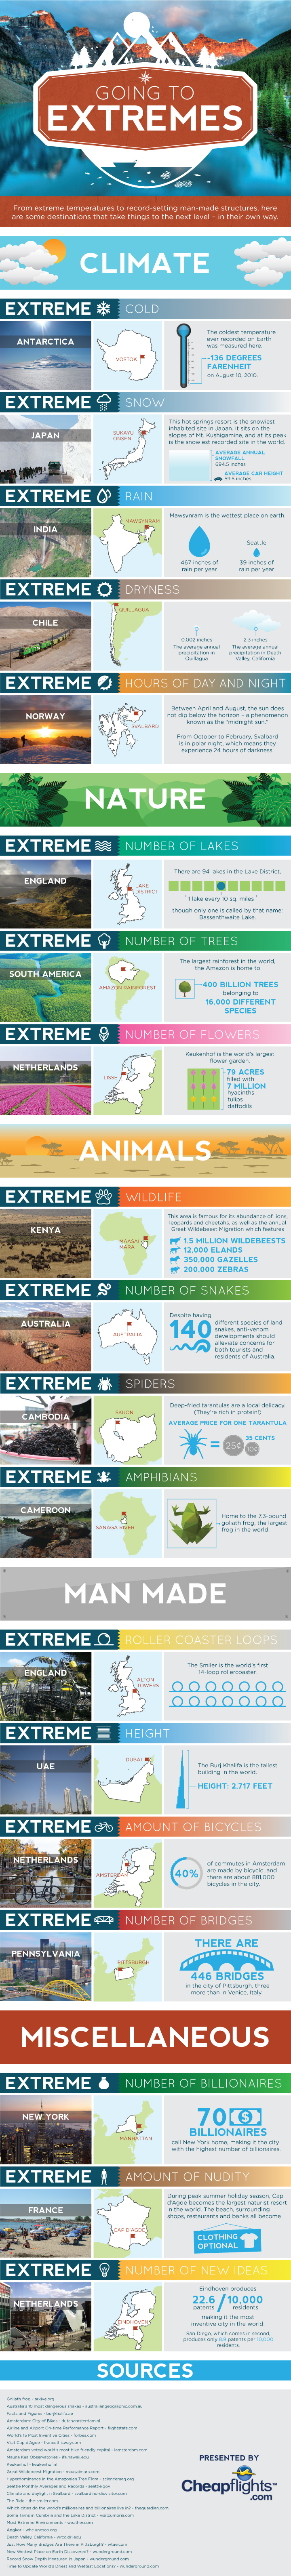 Going to extremes Destinations Around the World With The Most Fascinating Extremes (INFOGRAPHIC)